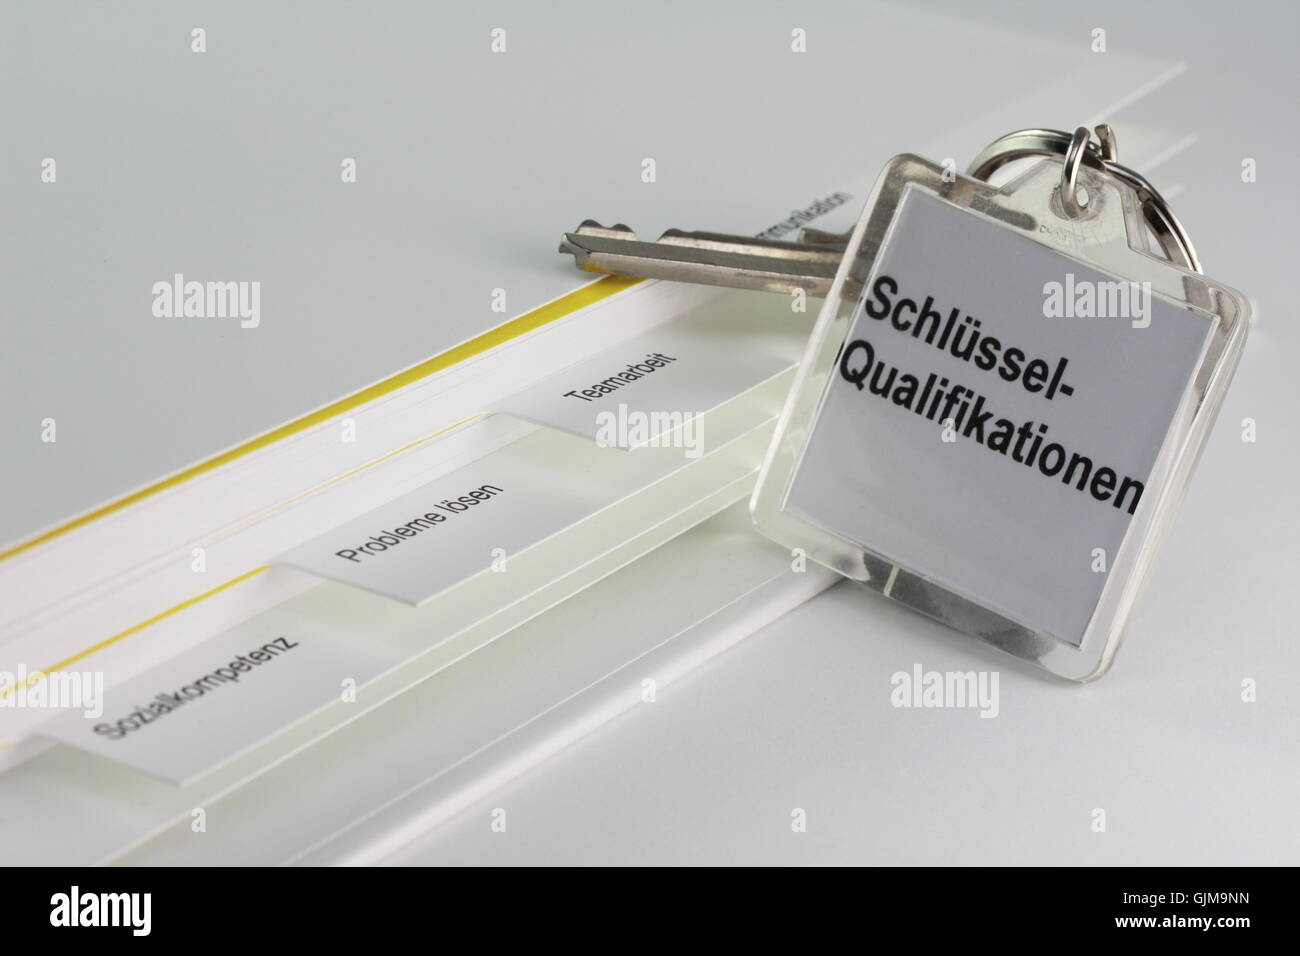 team work communication competence - Stock Image